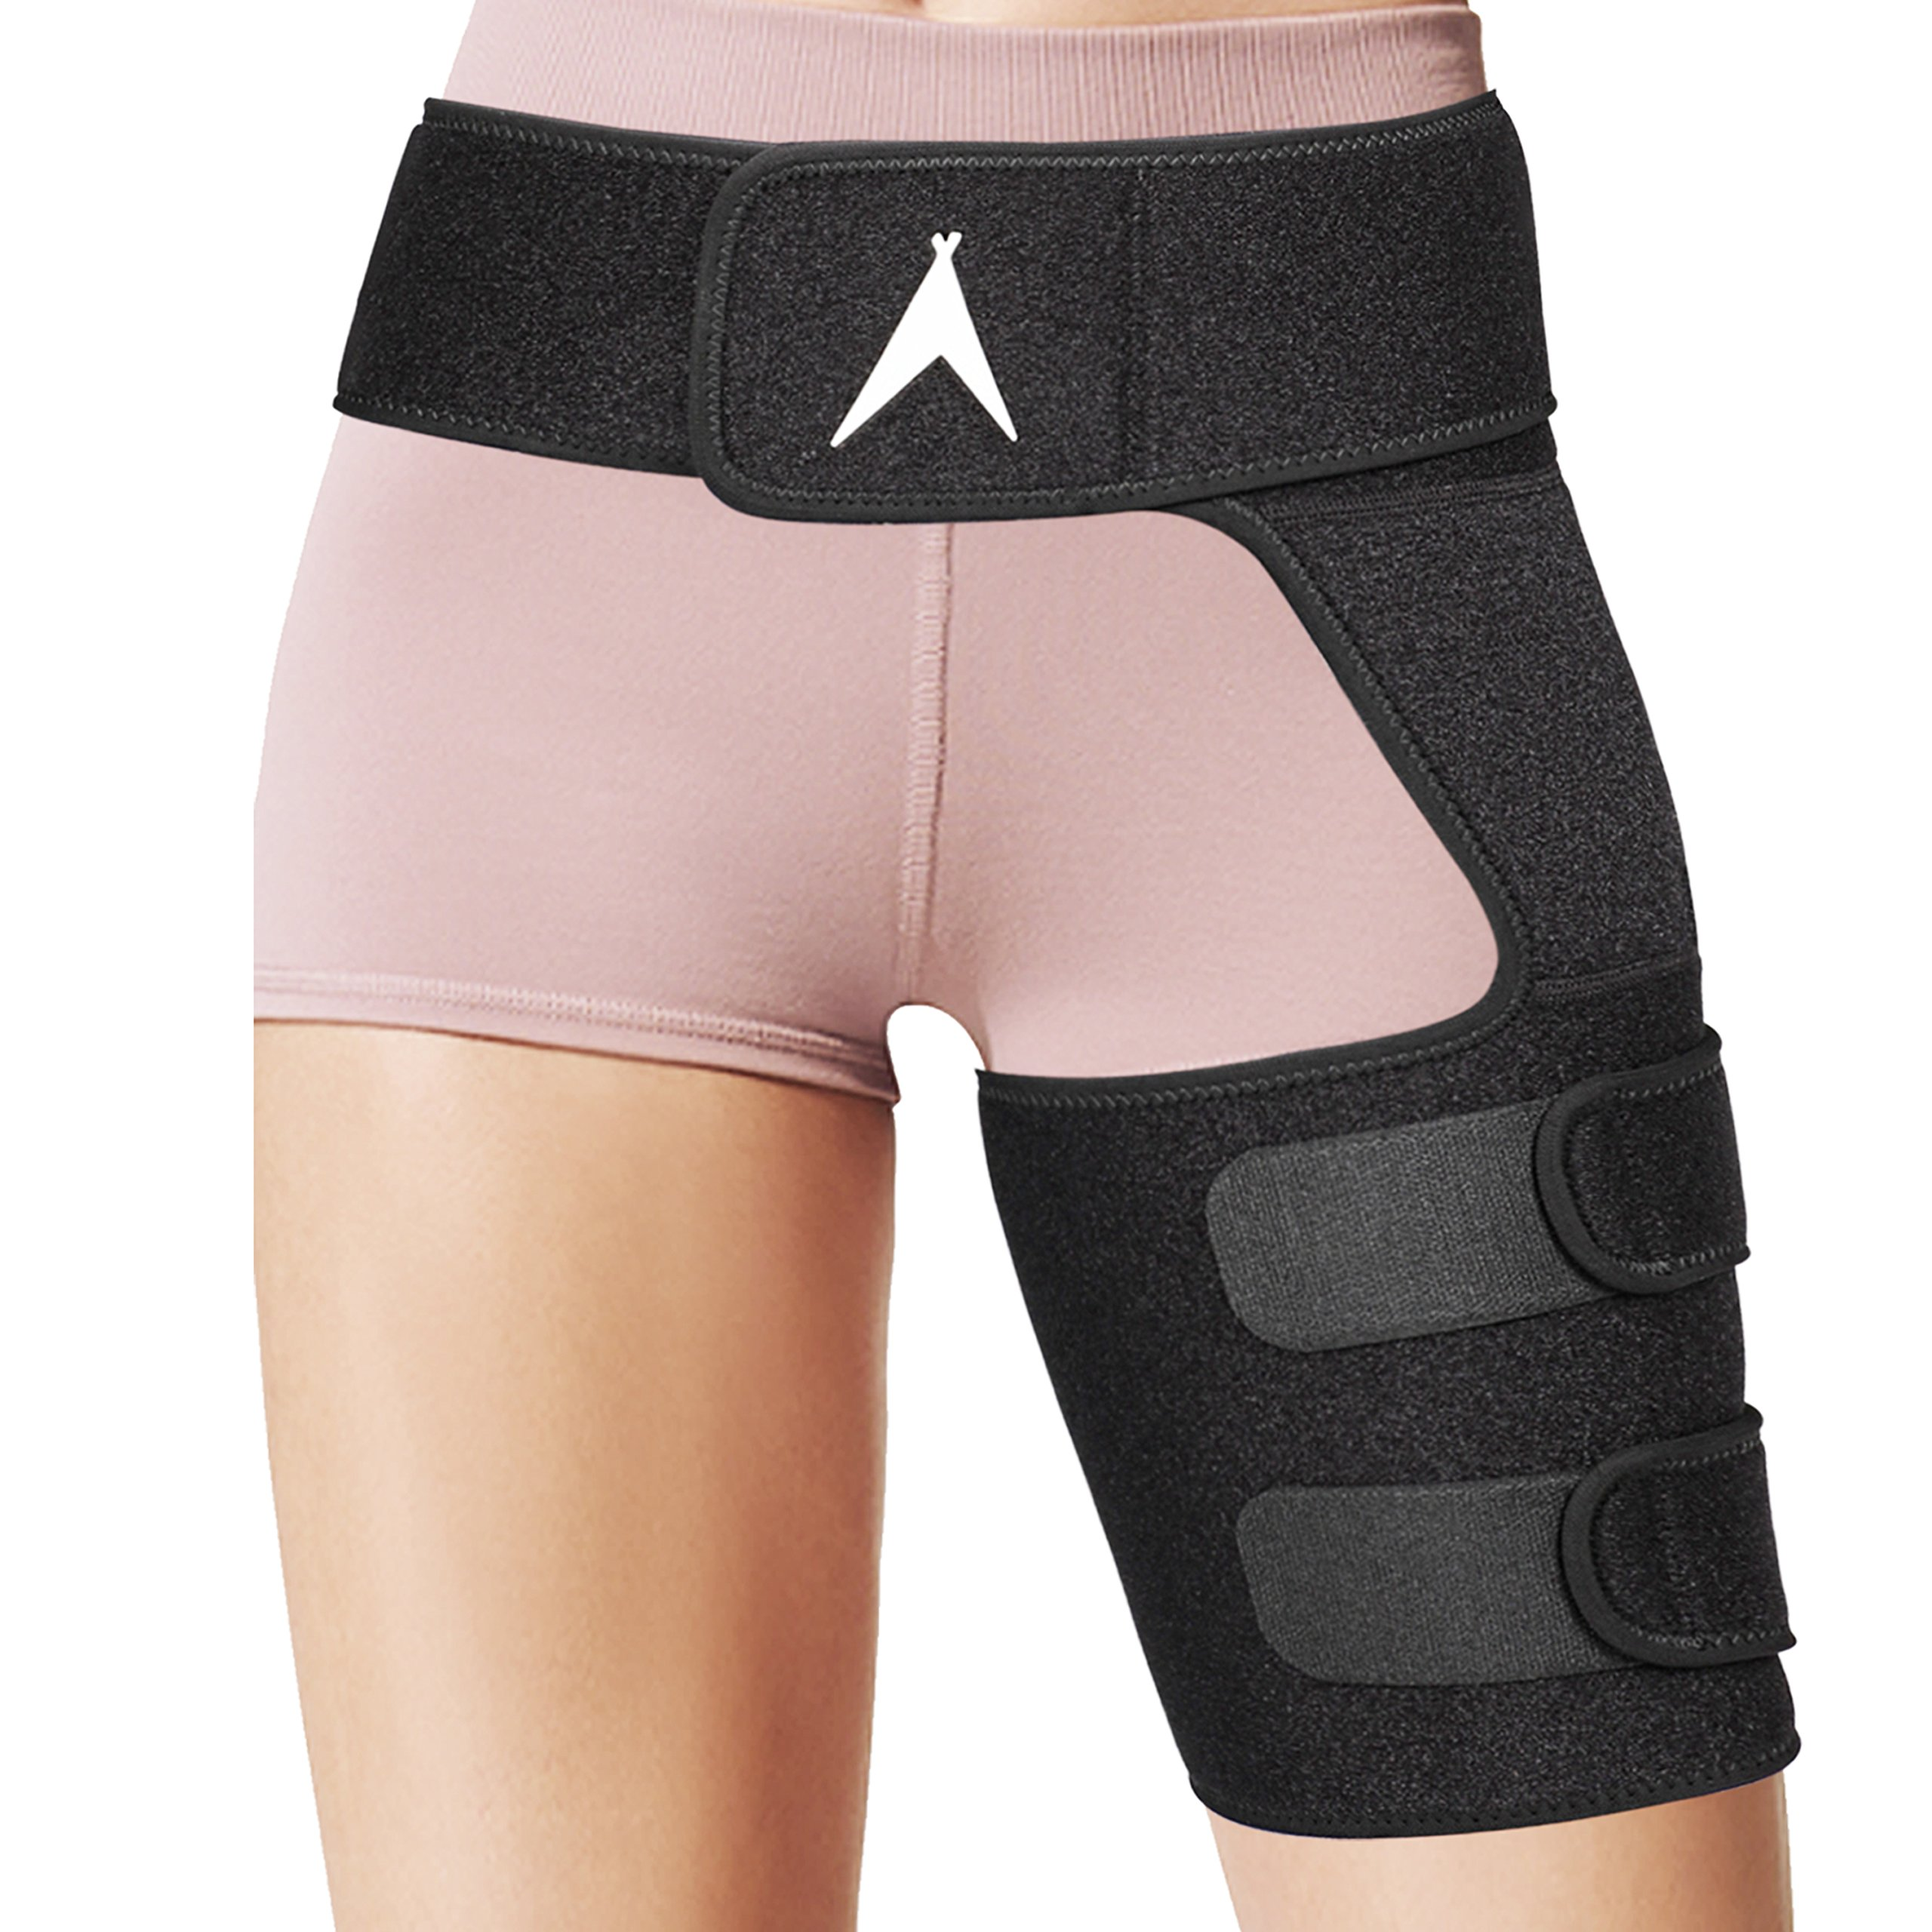 Action Tribex Hip Brace - Sciatica Pain Relief Belt and Groin Support - Adjustable Compression Wrap for Hamstring Thigh Lower Back - Muscle Joint Stabilizer Injury Recovery Strap for Men and Women